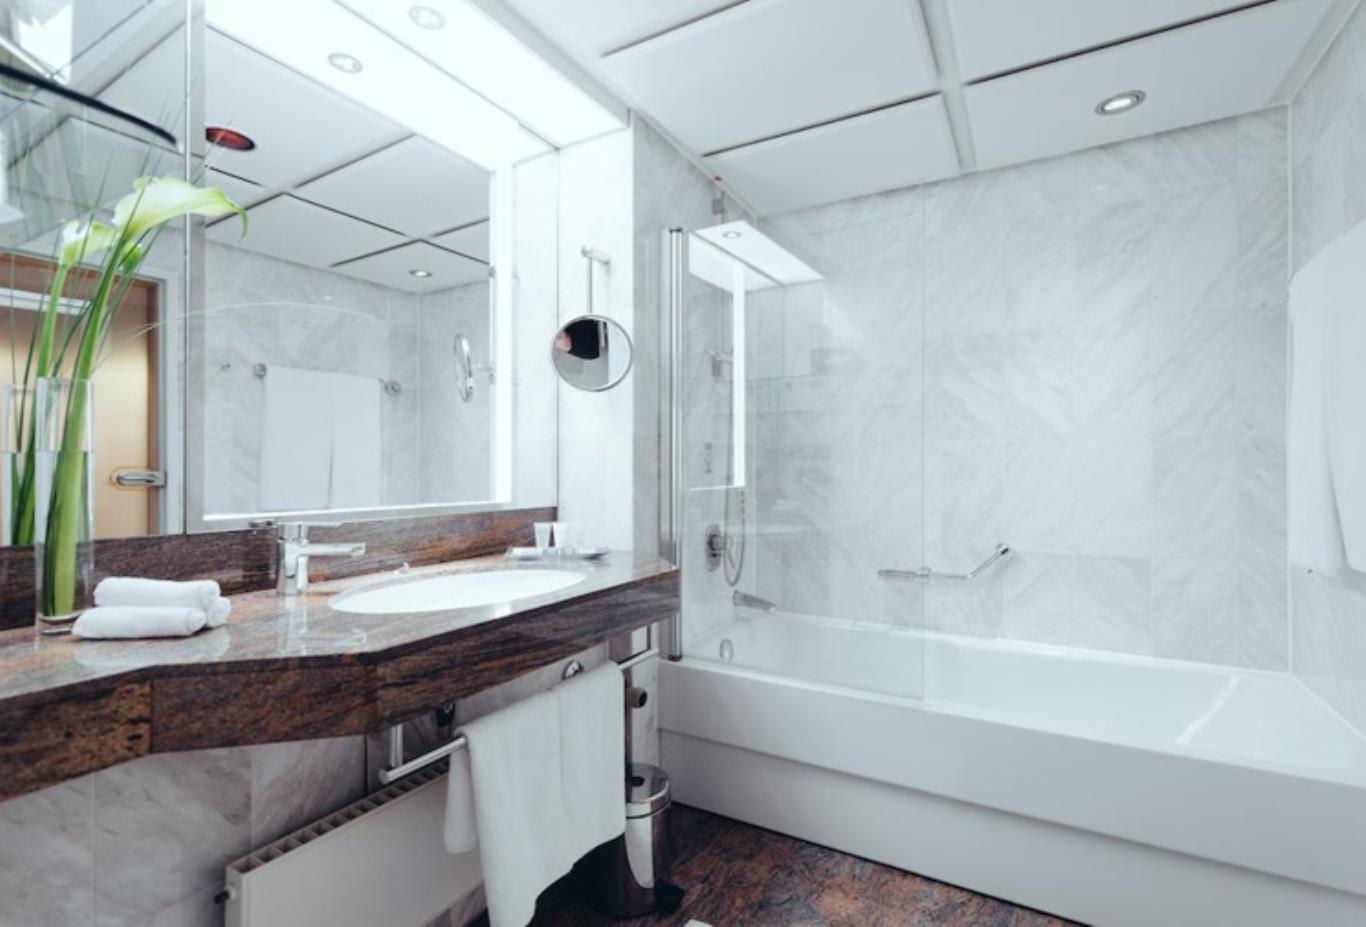 Grand Classic Double or Twin Room bathroom